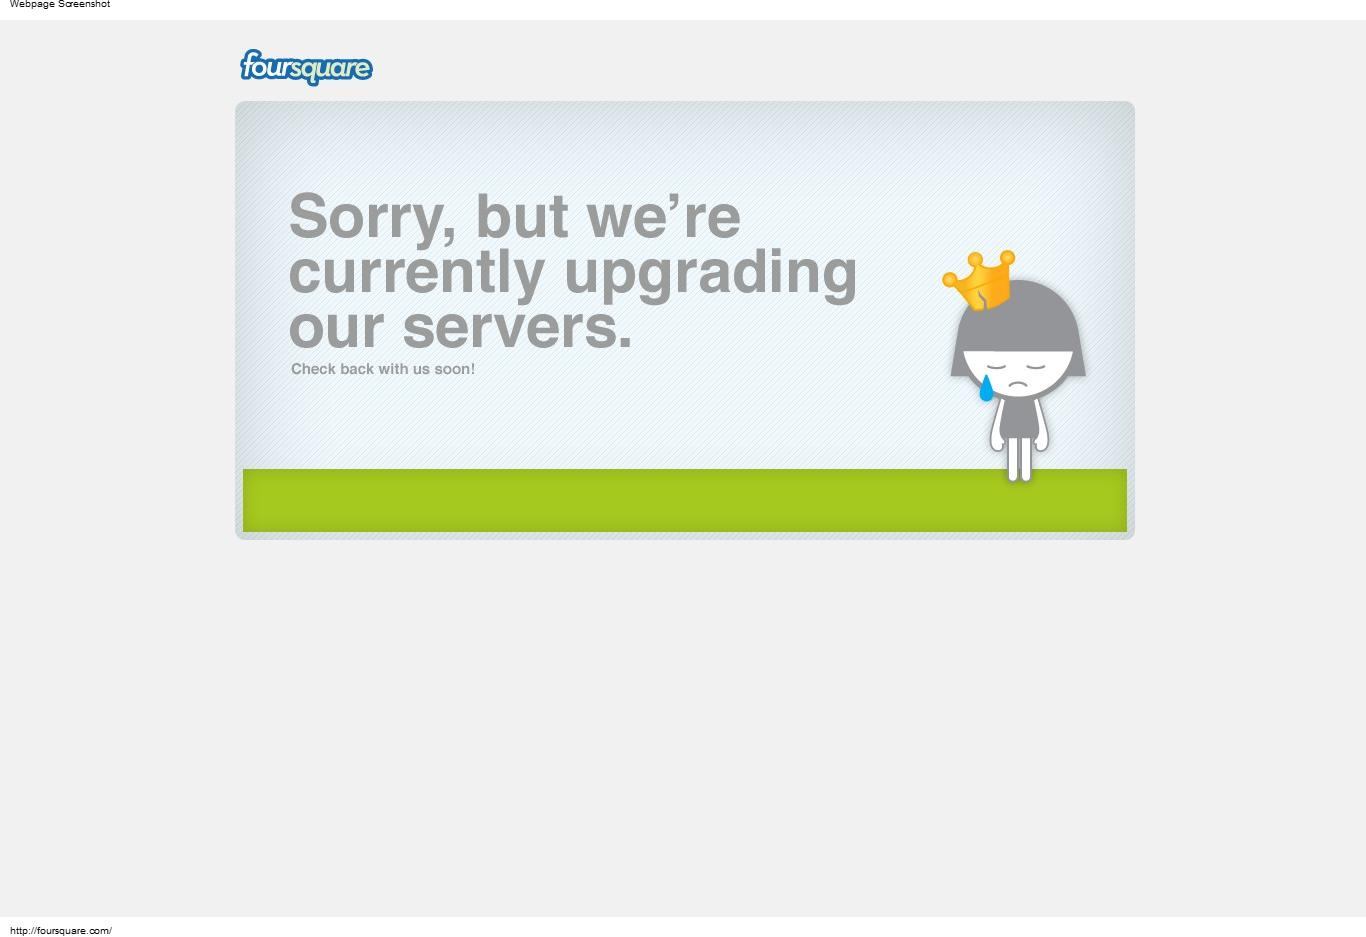 Foursquare Goes Down... err I mean they're upgrading servers...